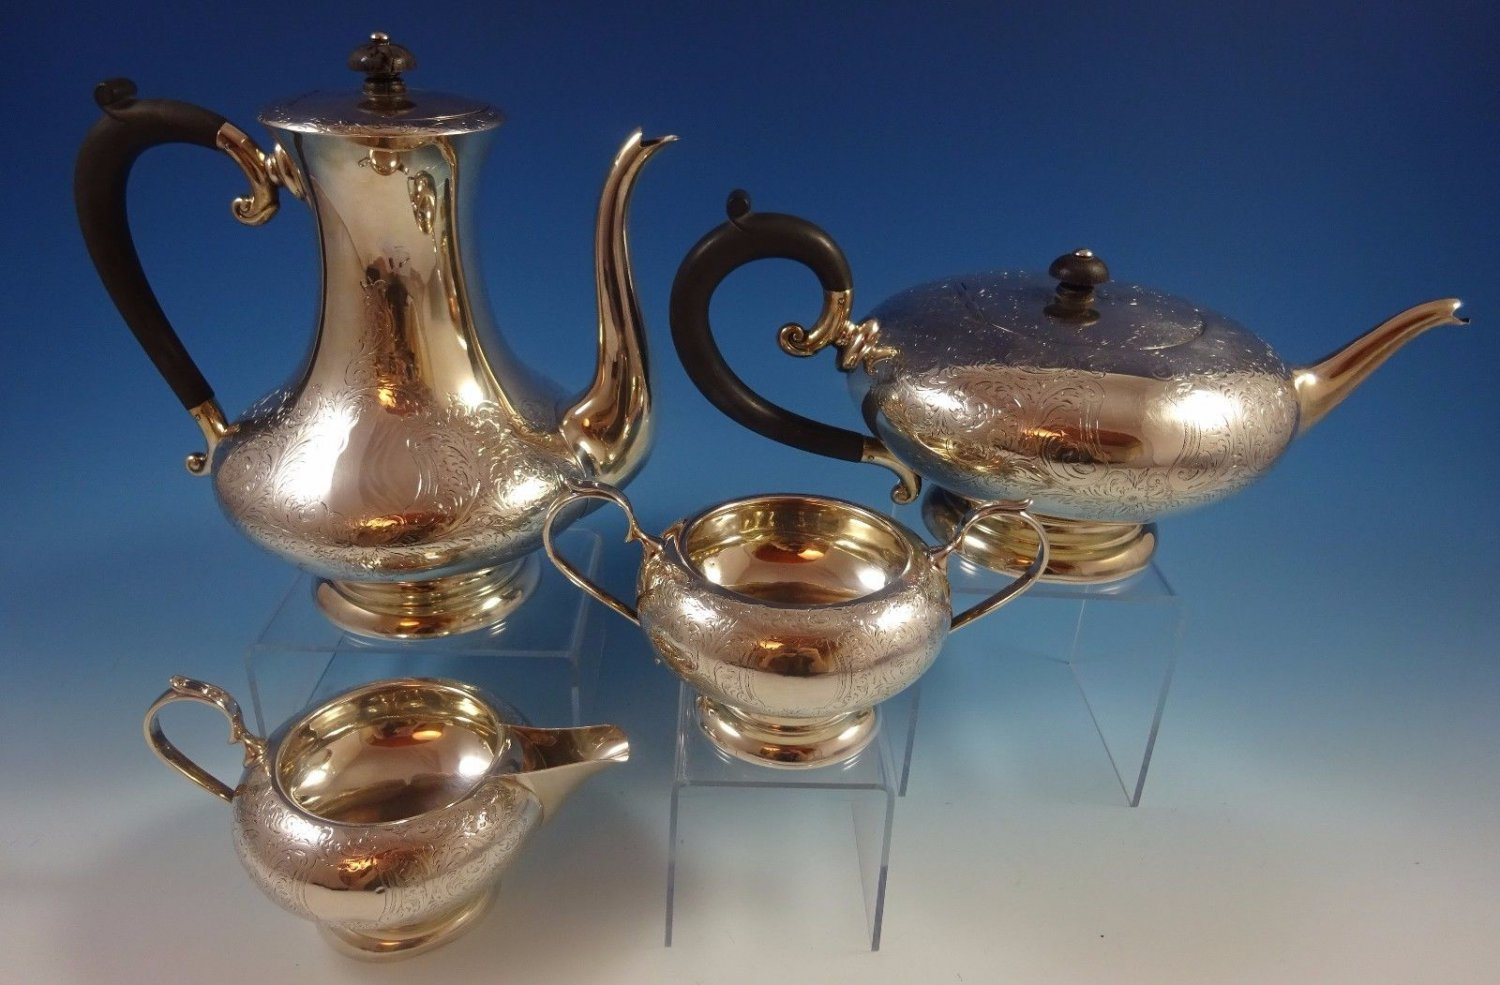 Charles S. Green English Sterling Silver Tea Set 4pc with Engraving (#1285)